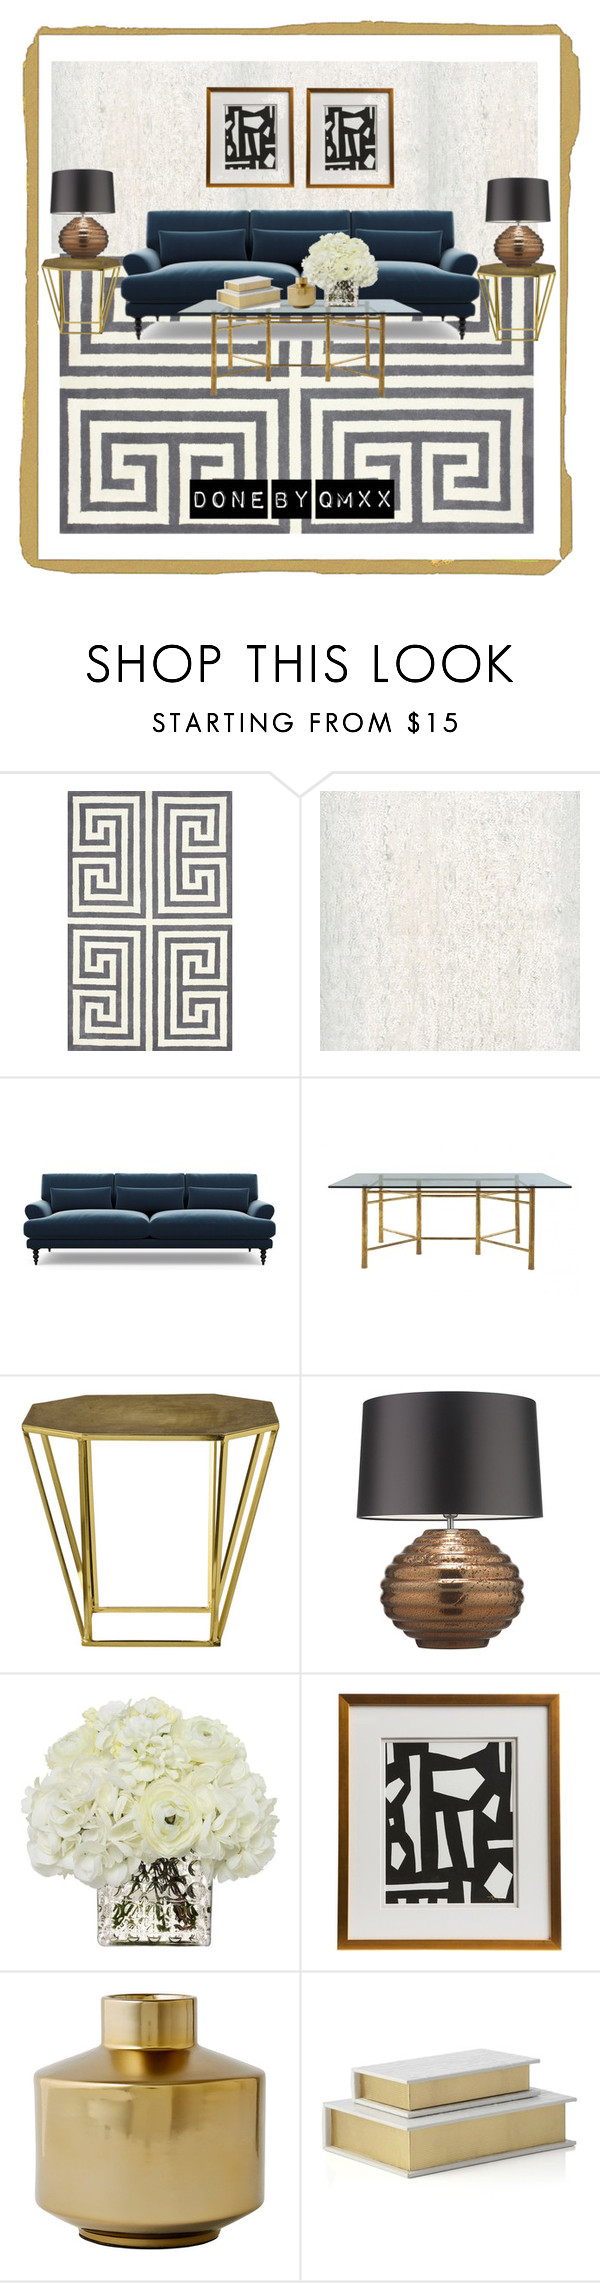 """""""Mix classic with new classic"""" by qqamrah on Polyvore featuring interior, interiors, interior design, home, home decor, interior decorating, nuLOOM, Élitis, Jayson Home and Zoffany"""